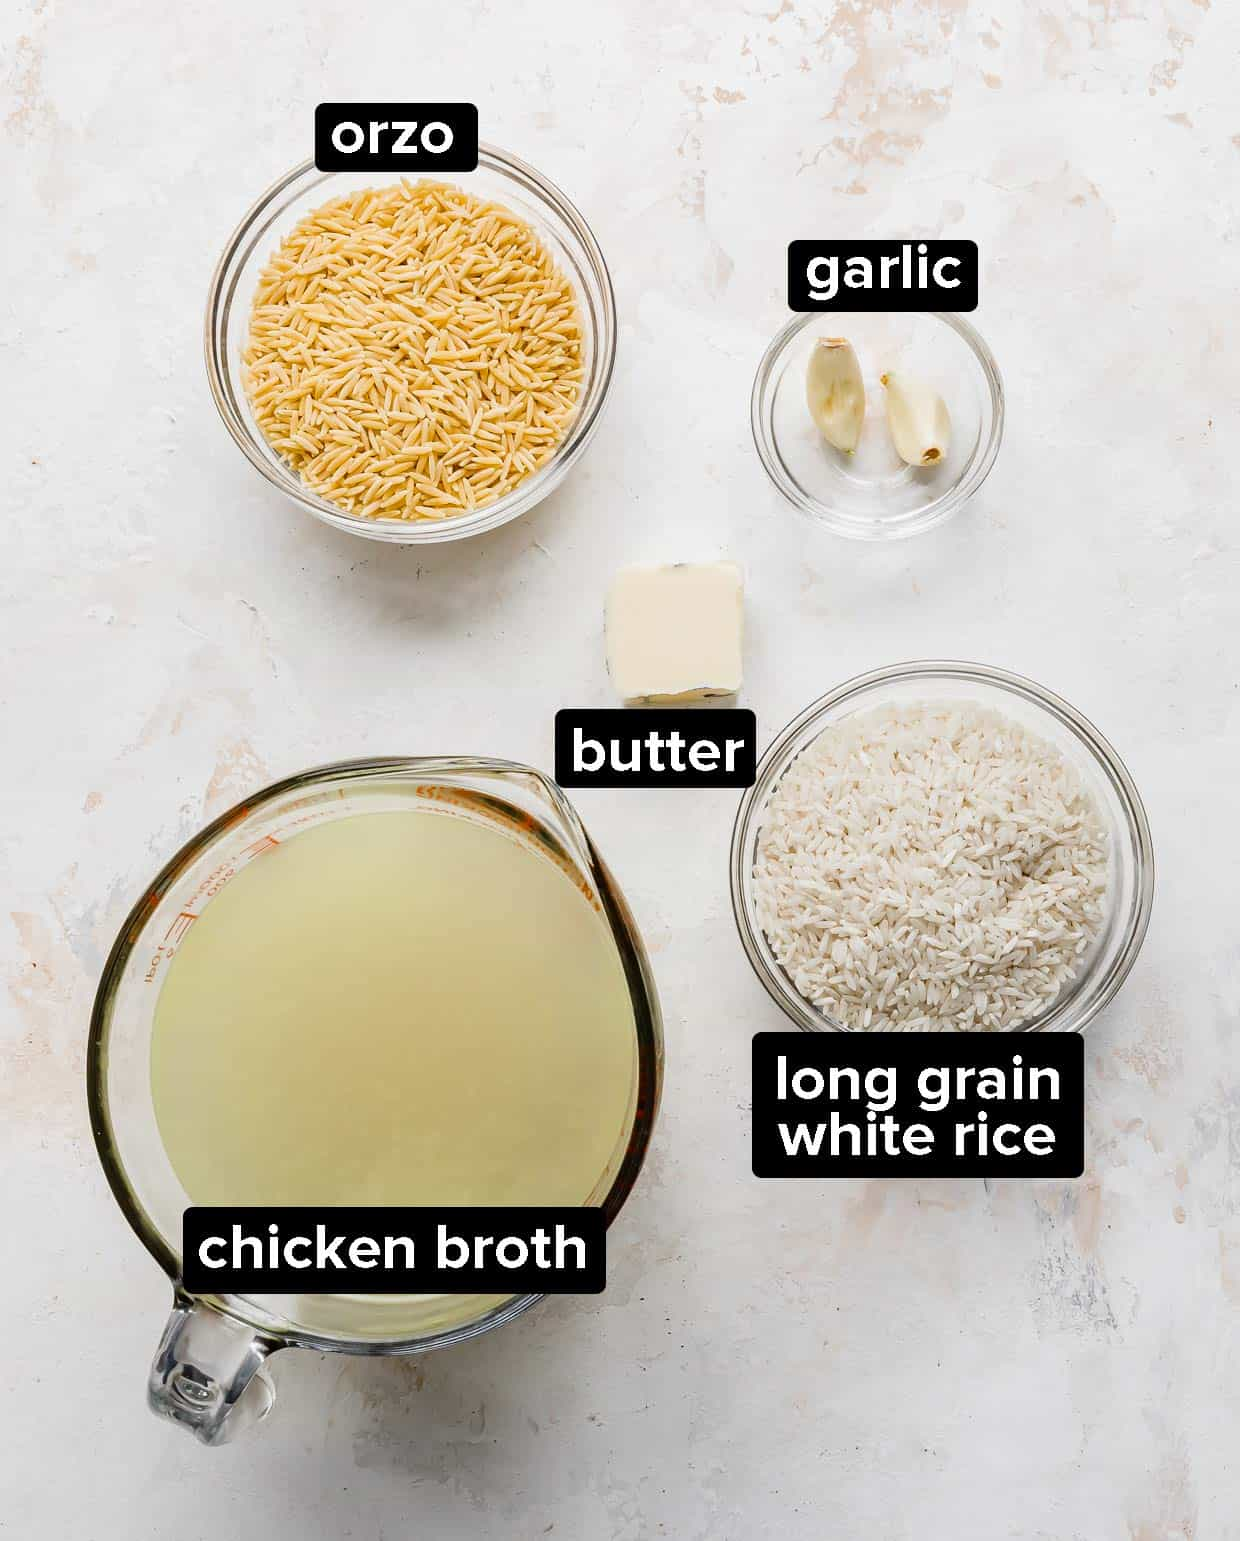 Ingredients used to make Orzo rice.